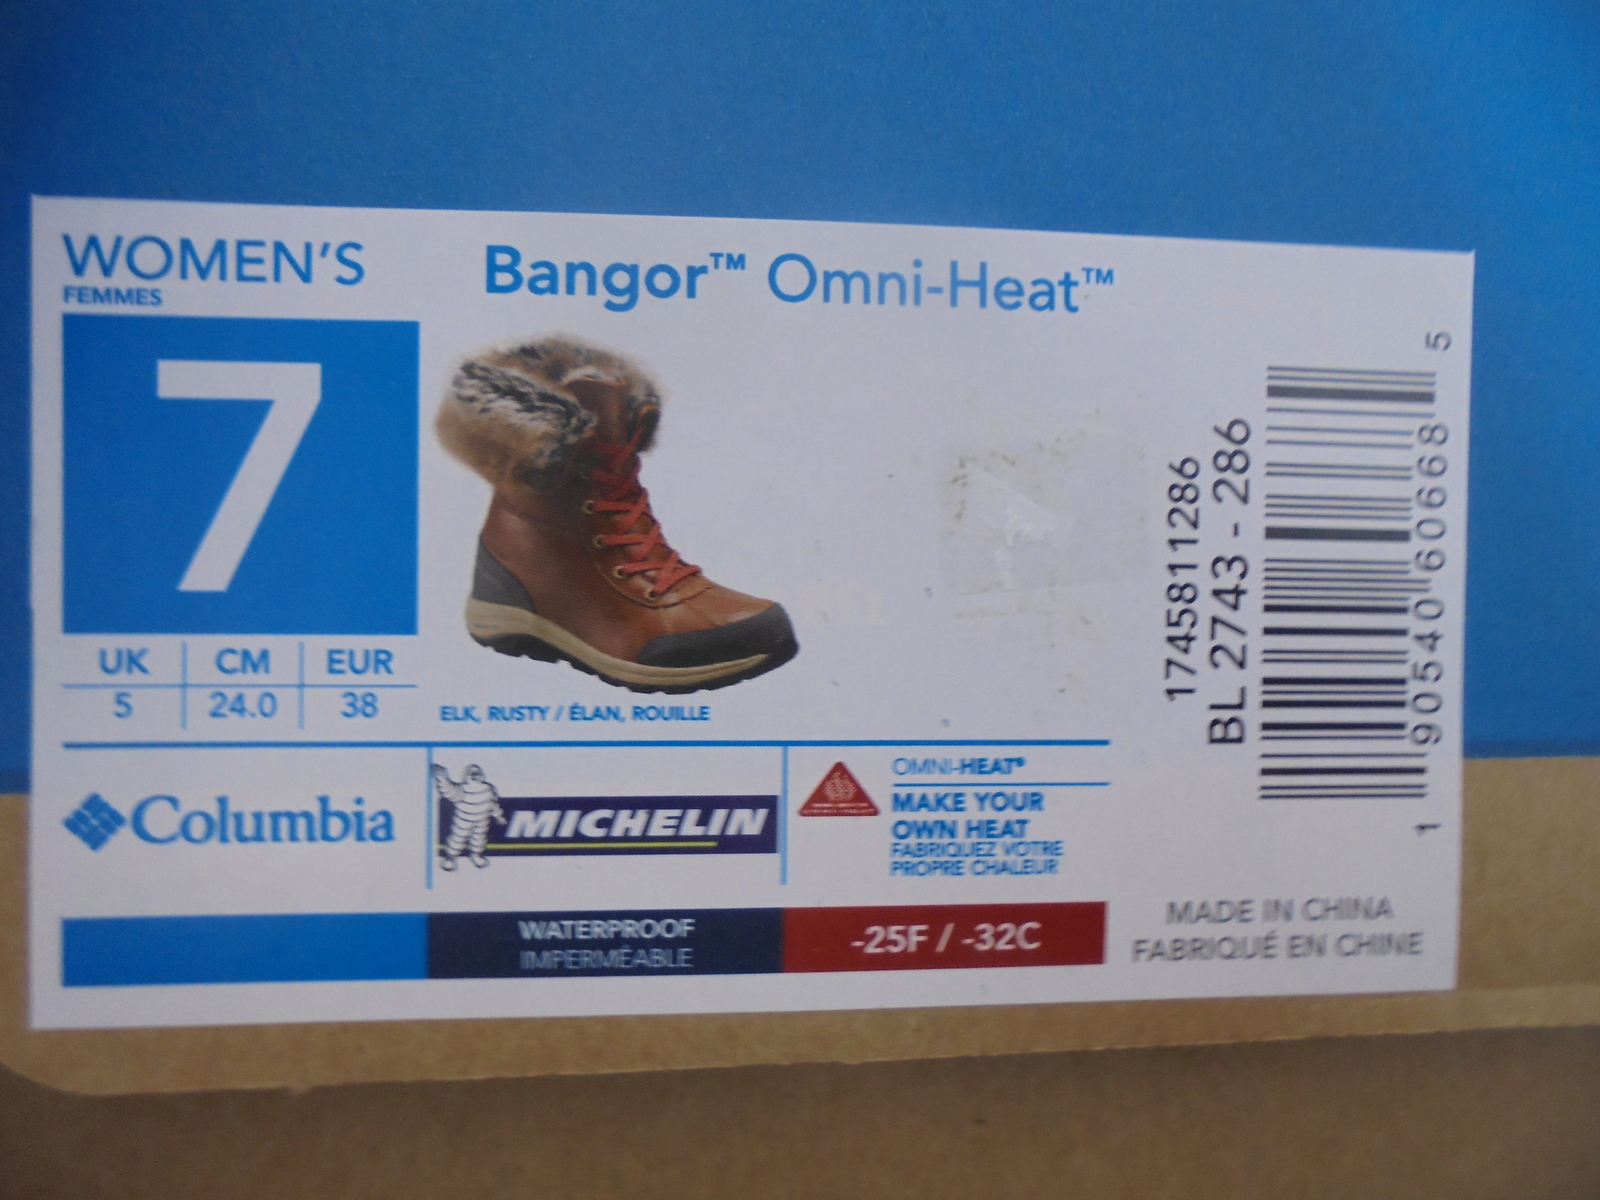 Omni and similar Columbia Heat Bangor items 50 TF1c5ulKJ3